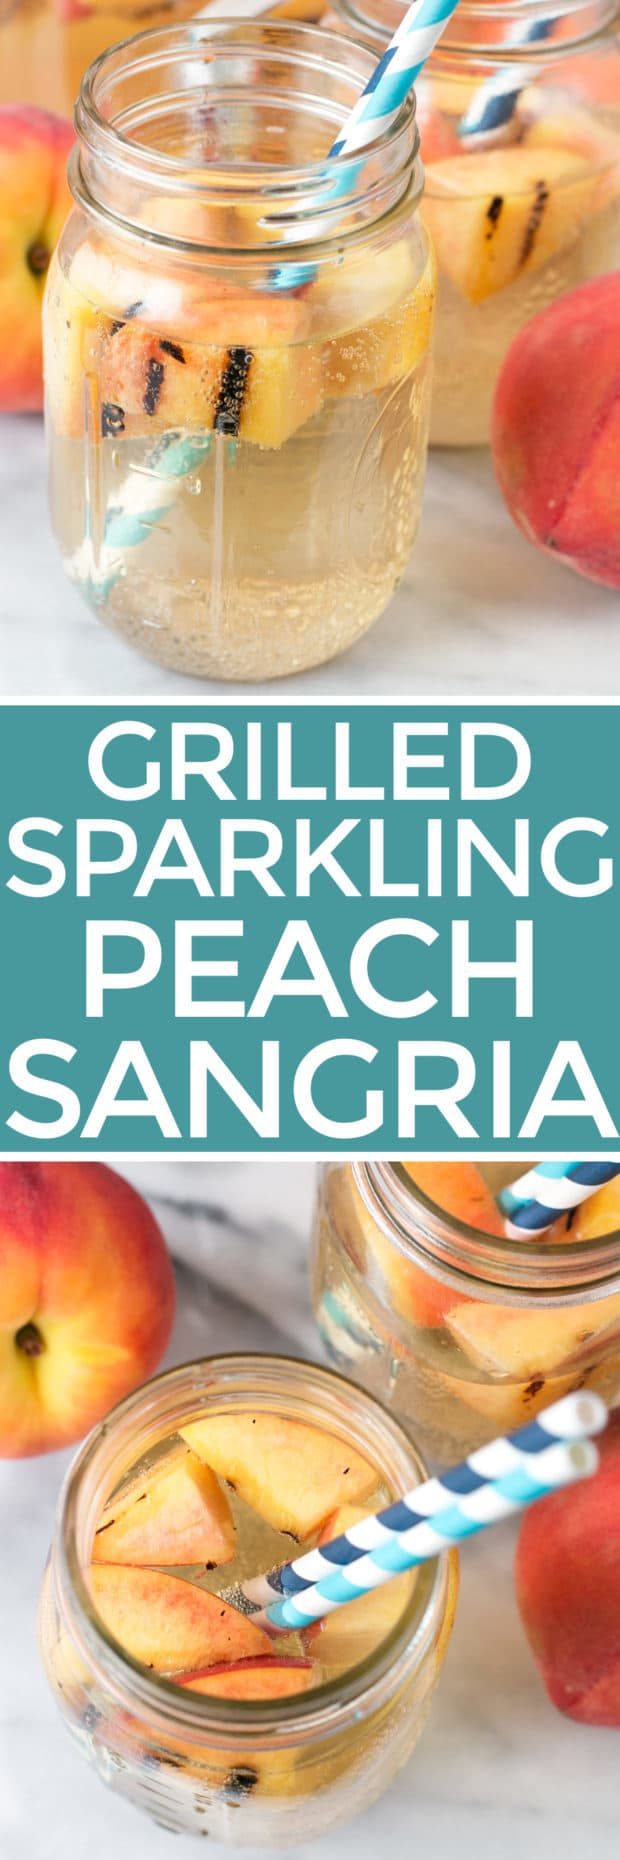 Sparkling Grilled Peach Sangria | cakenknife.com #grilling #peaches #wine #cocktail